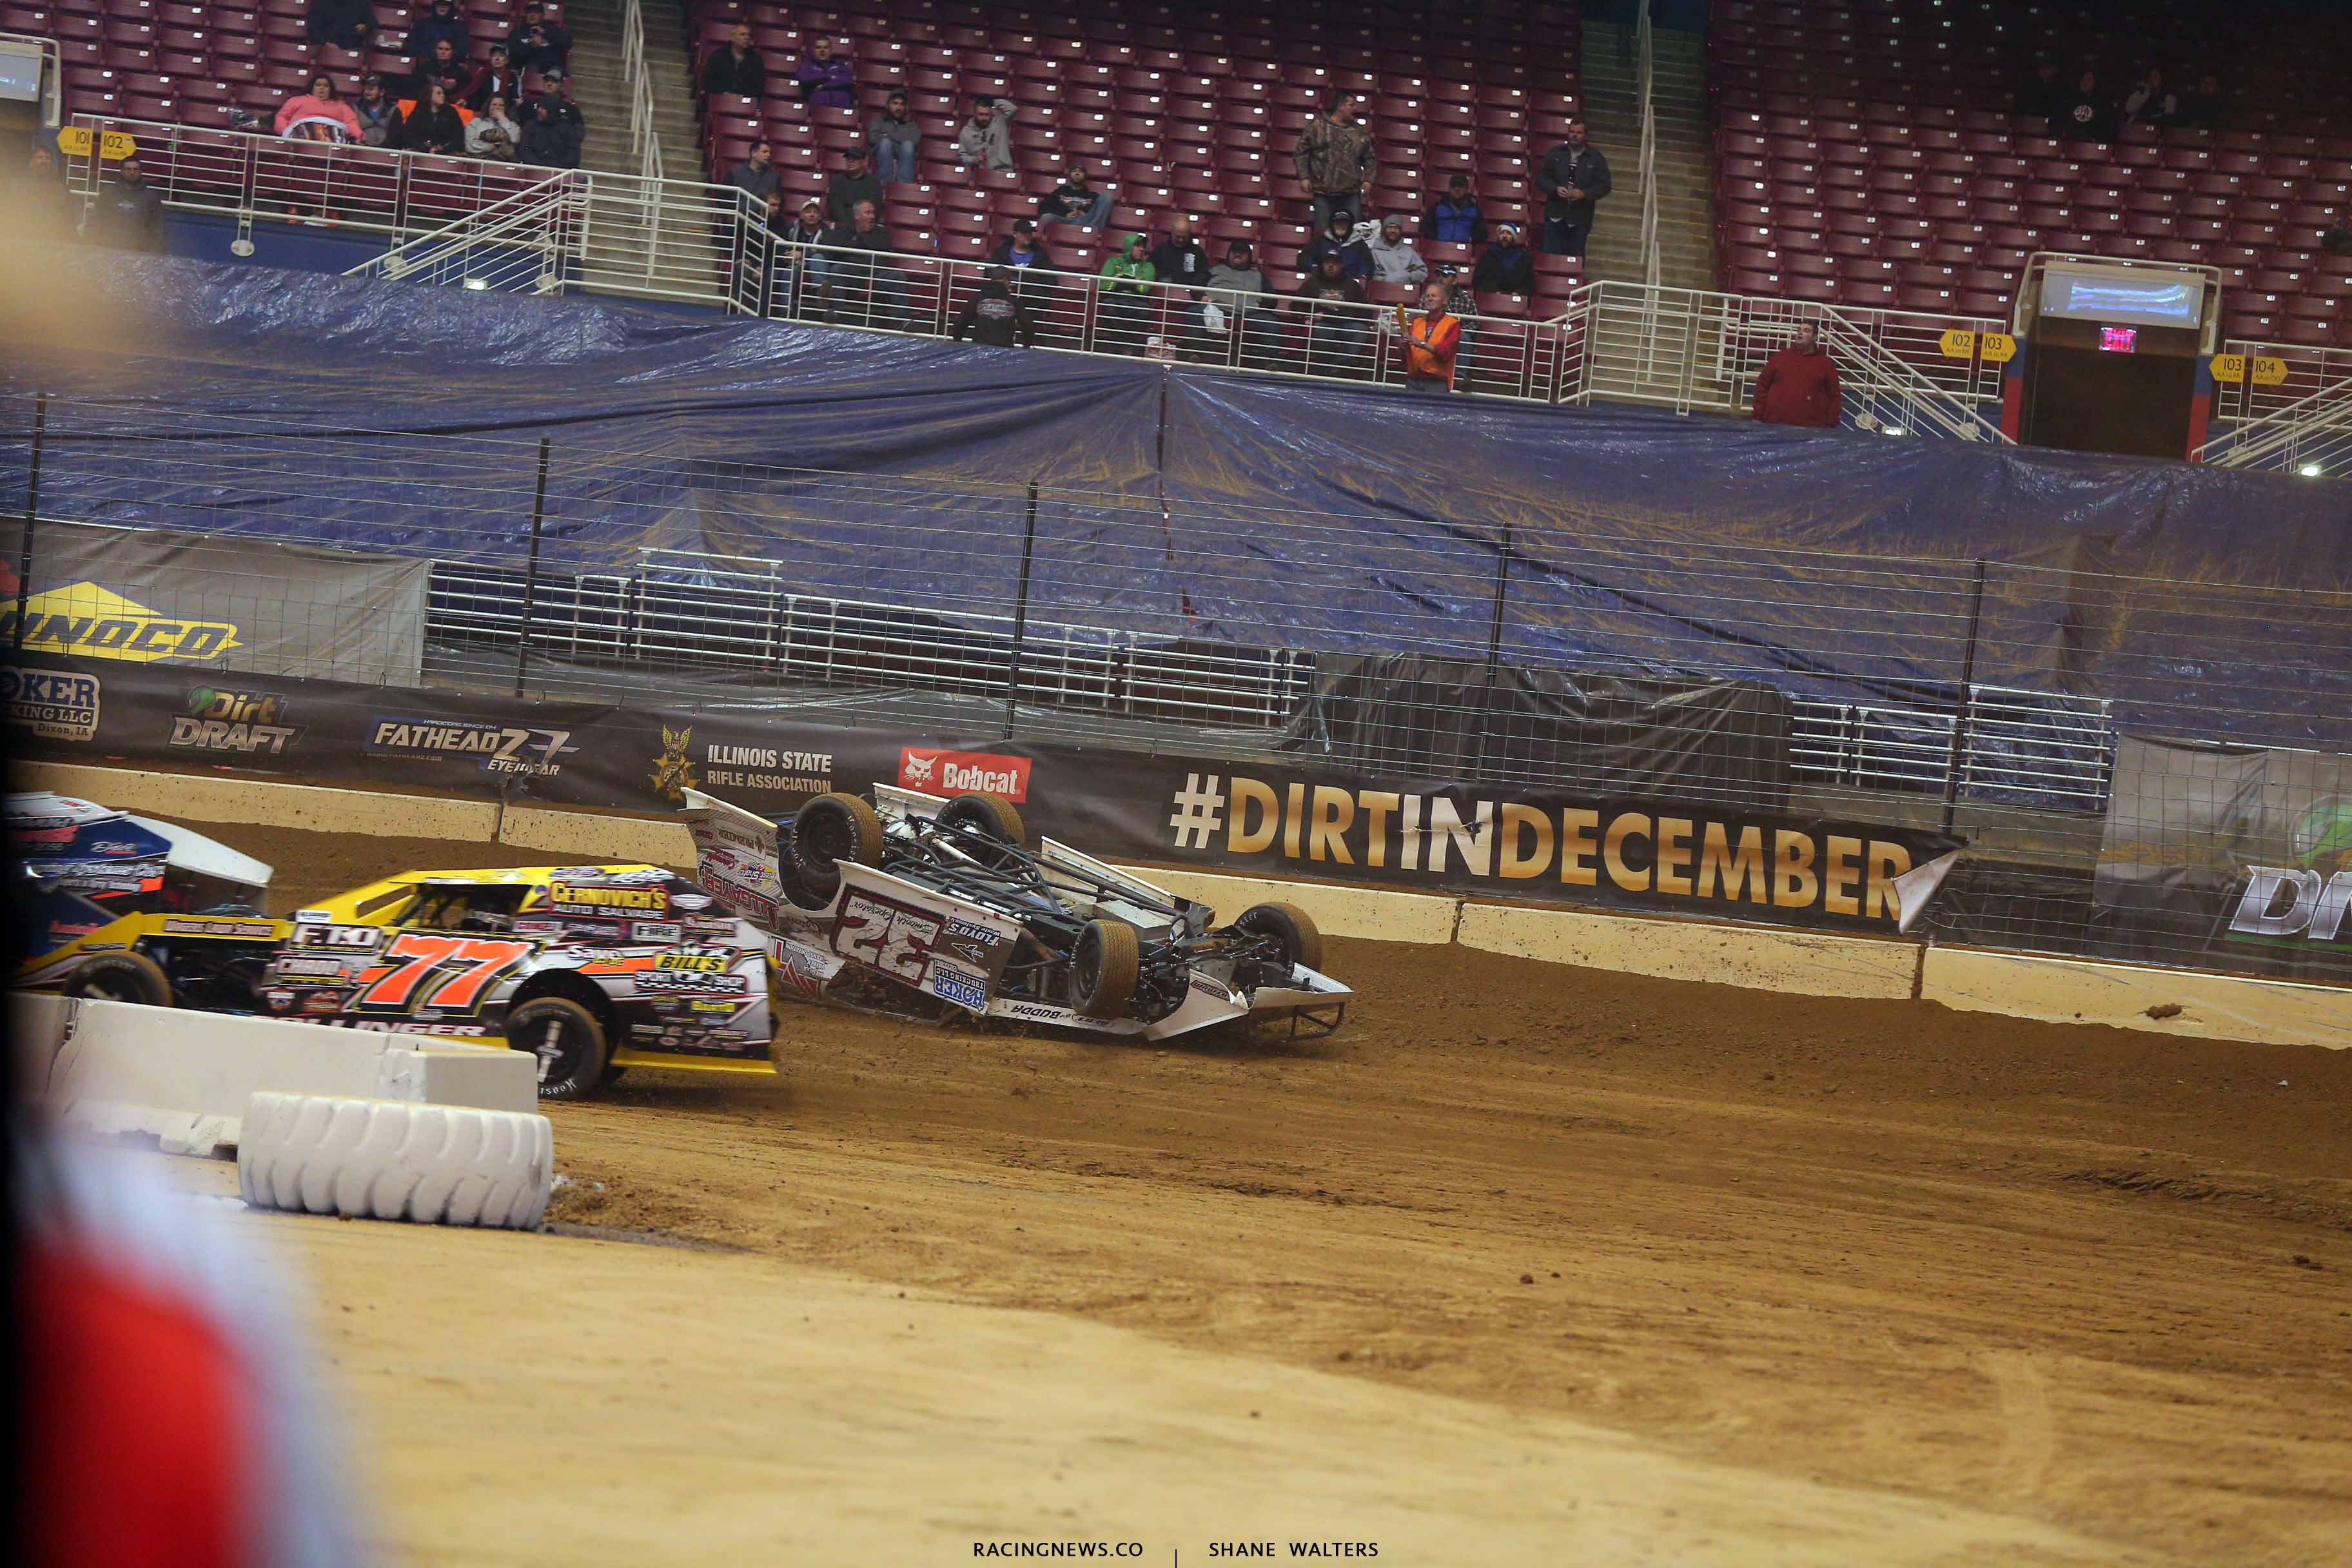 Bobby Pierce flips in the Gateway Dirt Nationals - Dirt modified 2125